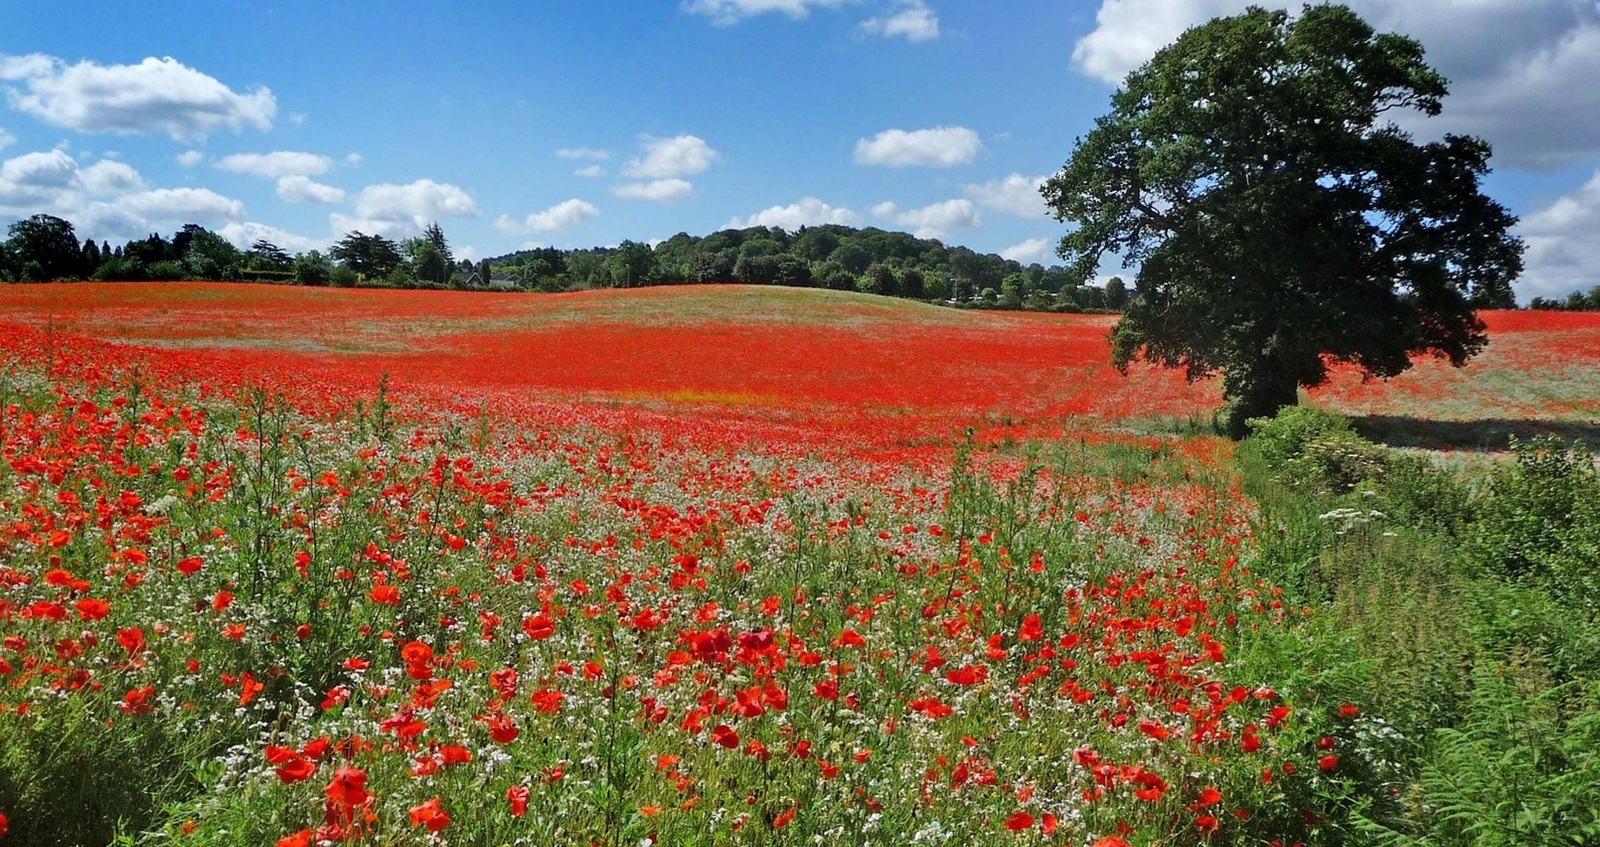 A field of natural poppies